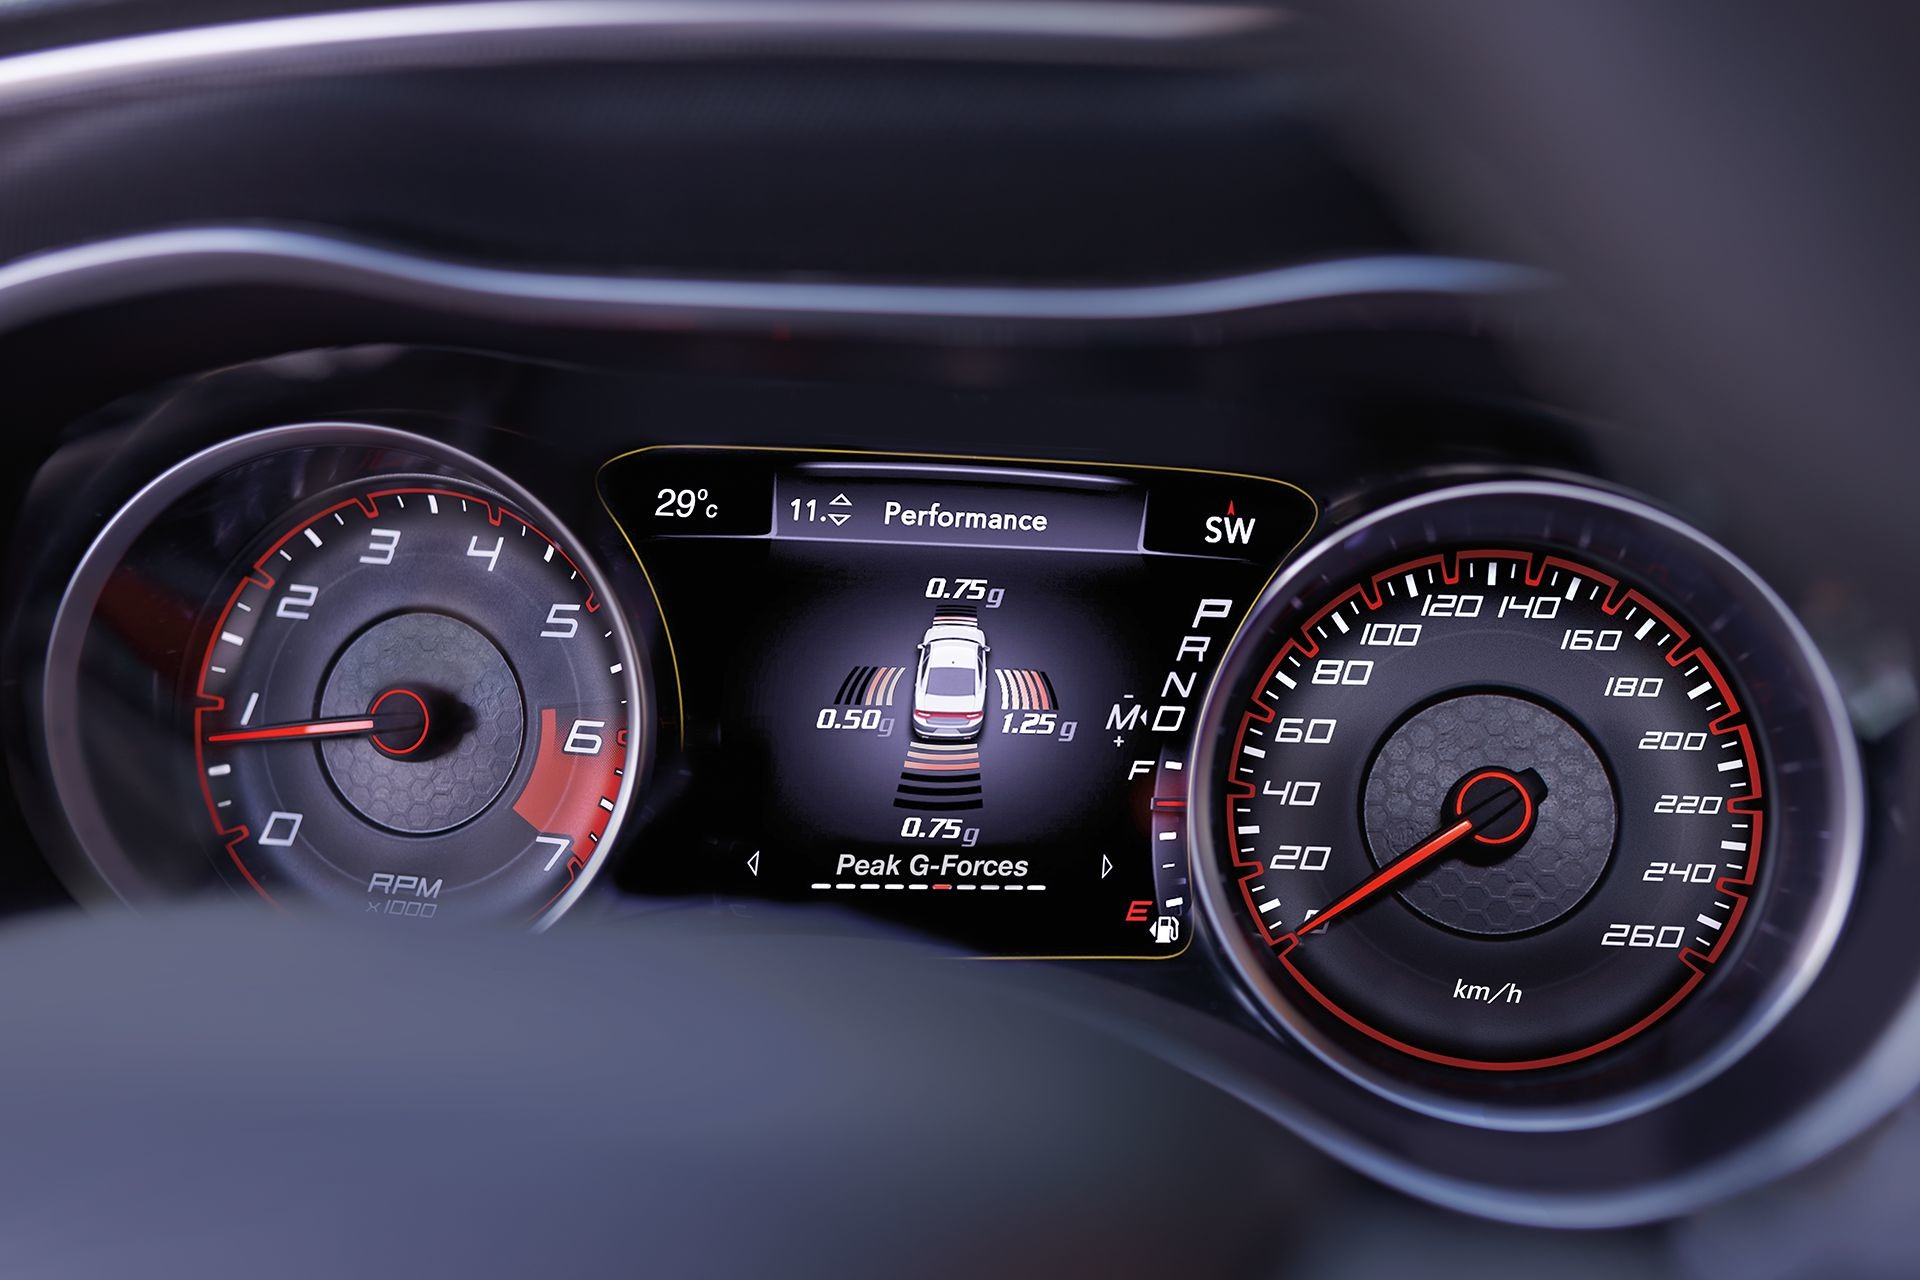 2019 Dodge Charger customizable information display